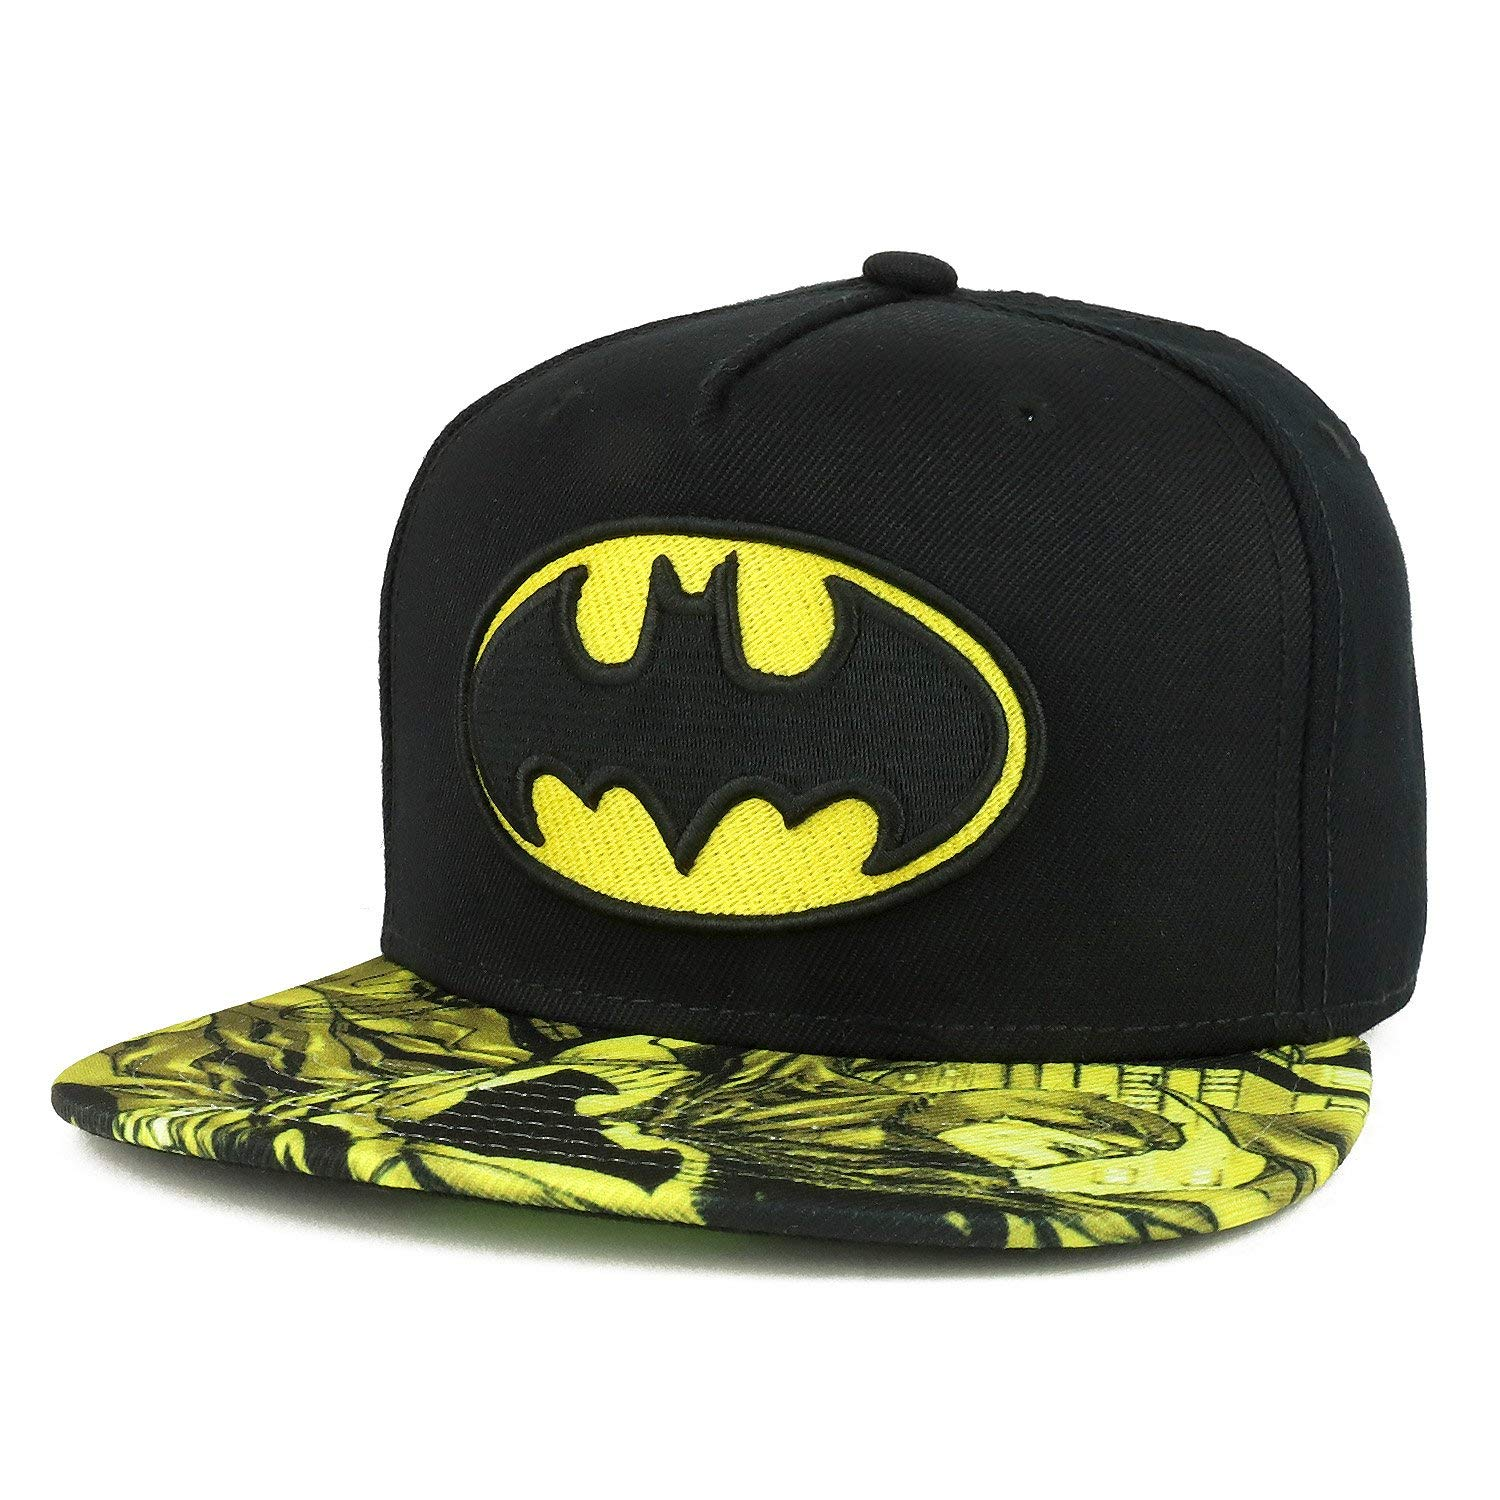 aae864a61c4 Get Quotations · Armycrew Youth Size Kid s Batman Logo Design Embroidered  Flatbill Snapback Cap